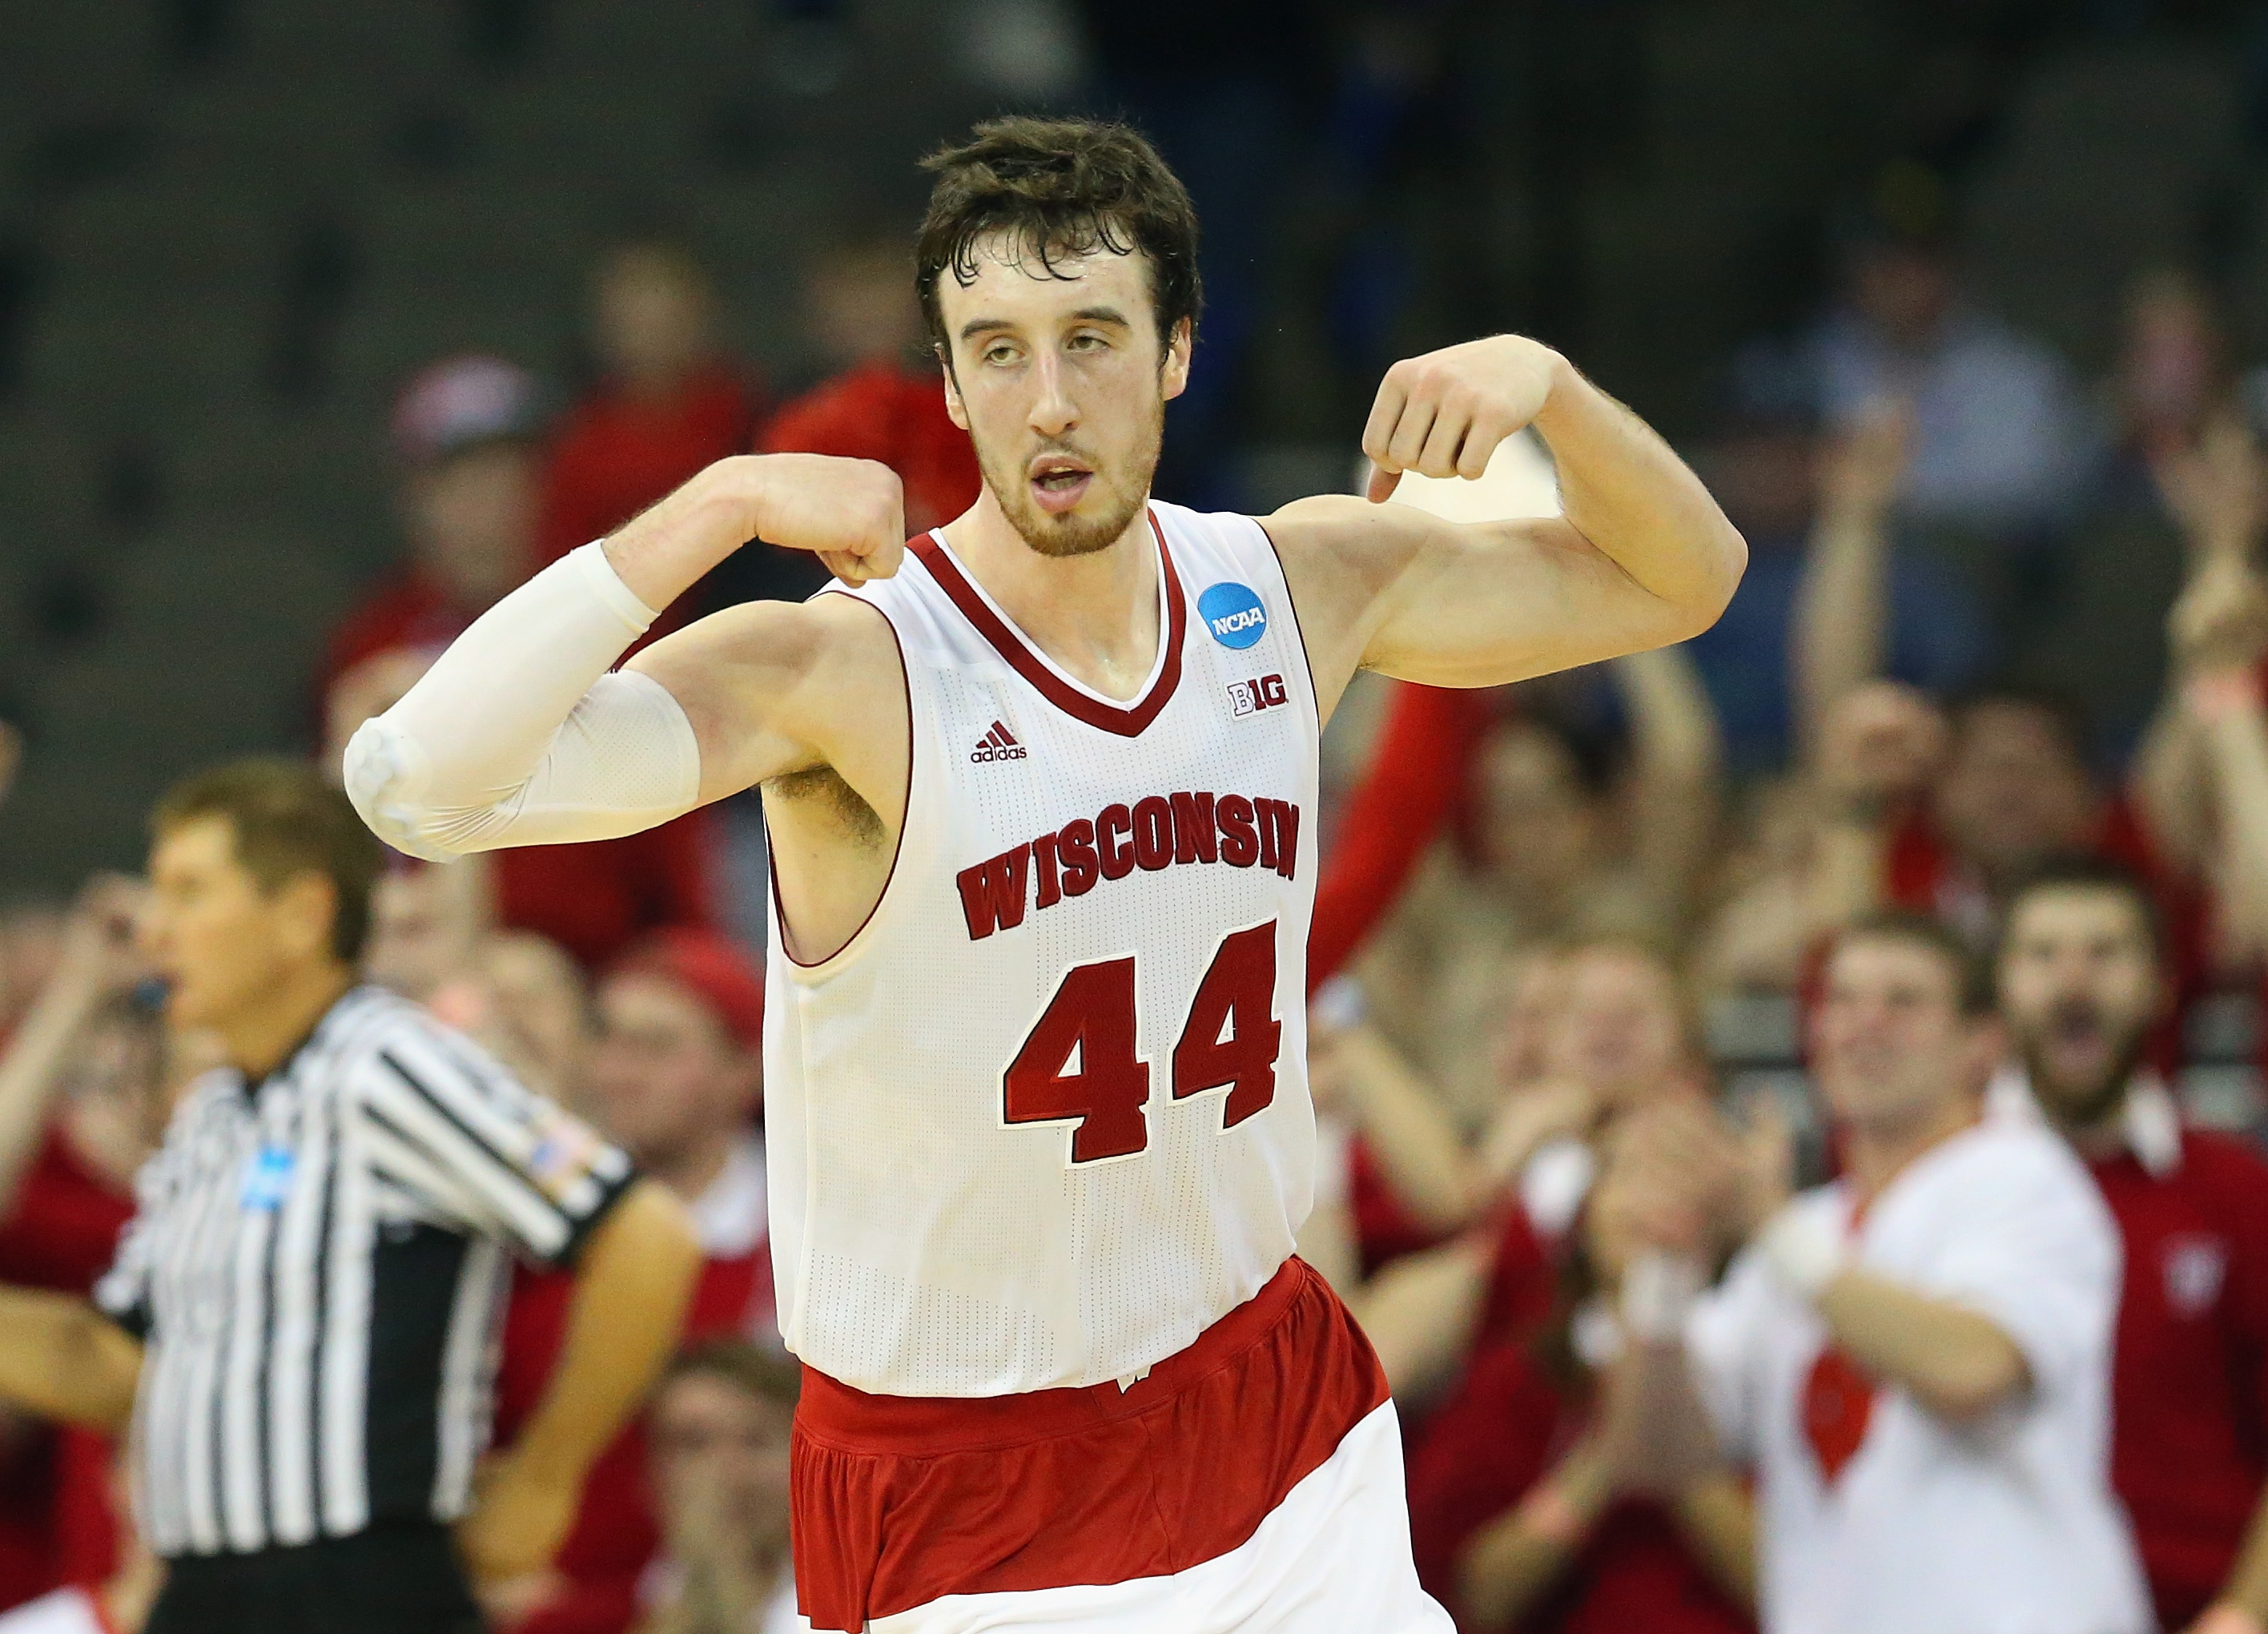 Wisconsin's Frank Kaminsky flexed his muscles after making a late basket to extend the lead over Oregon.